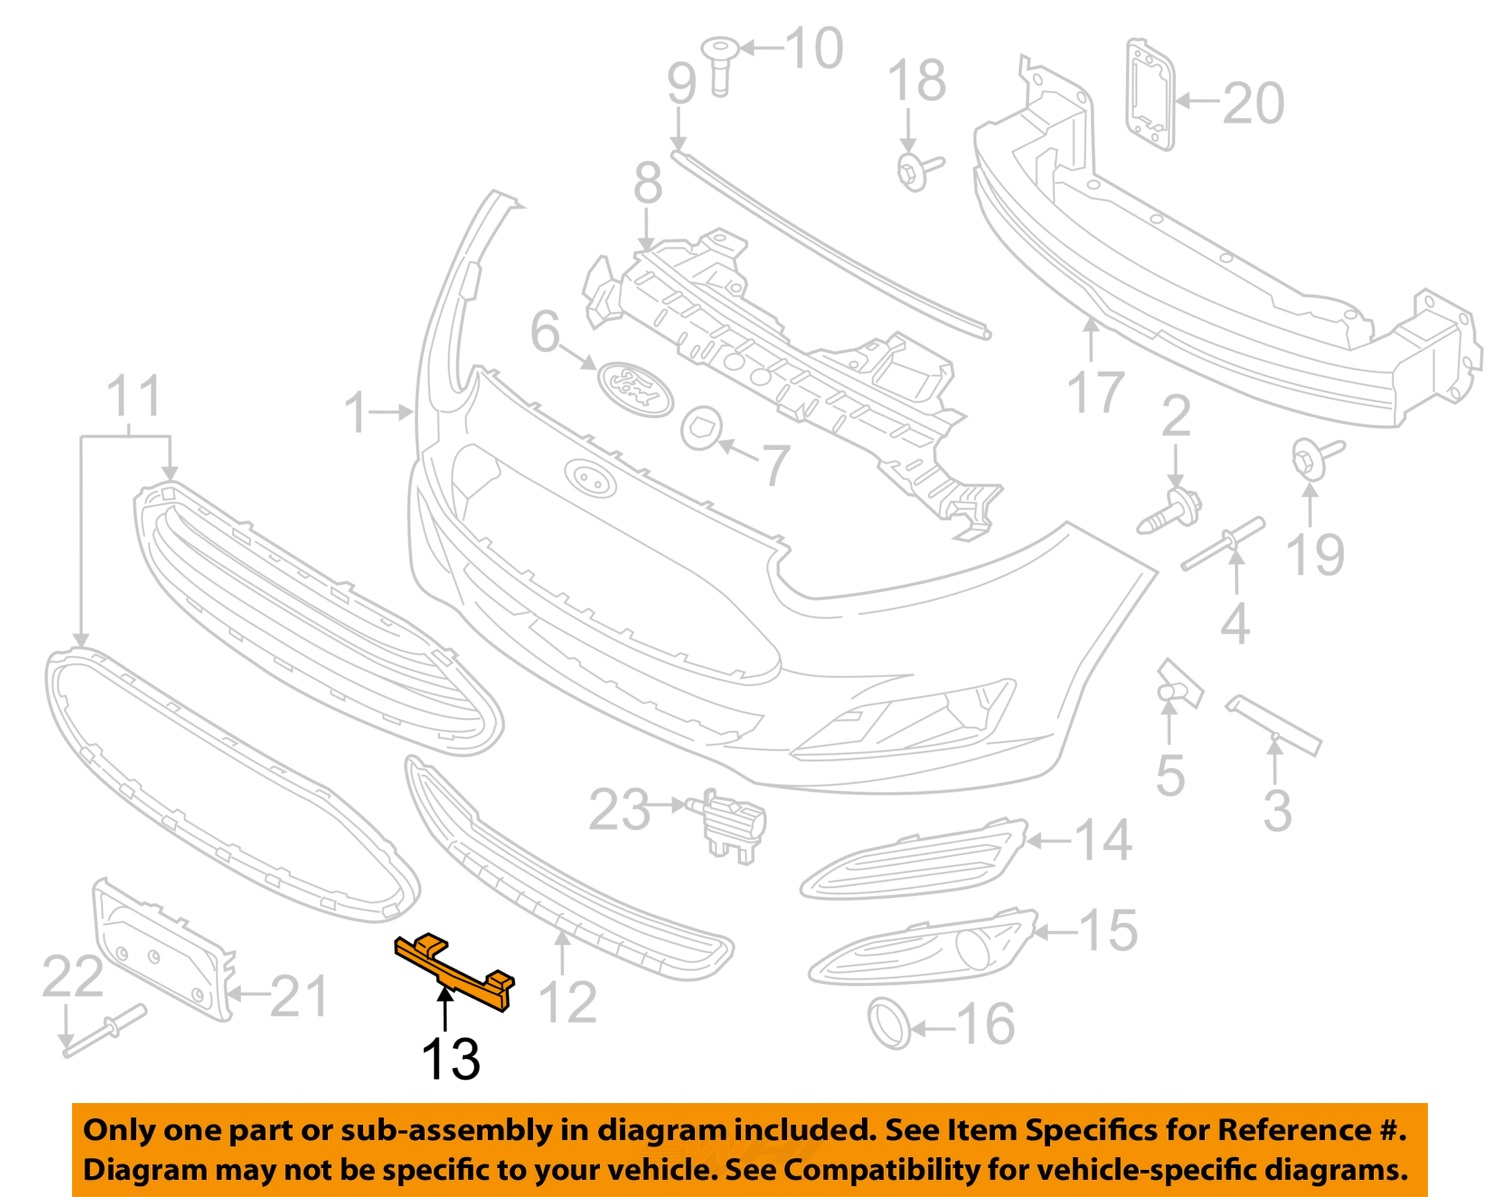 ford oem 14-16 fiesta front bumper-end cover right ... ford e series front bumper diagram ford e series fuse box #6